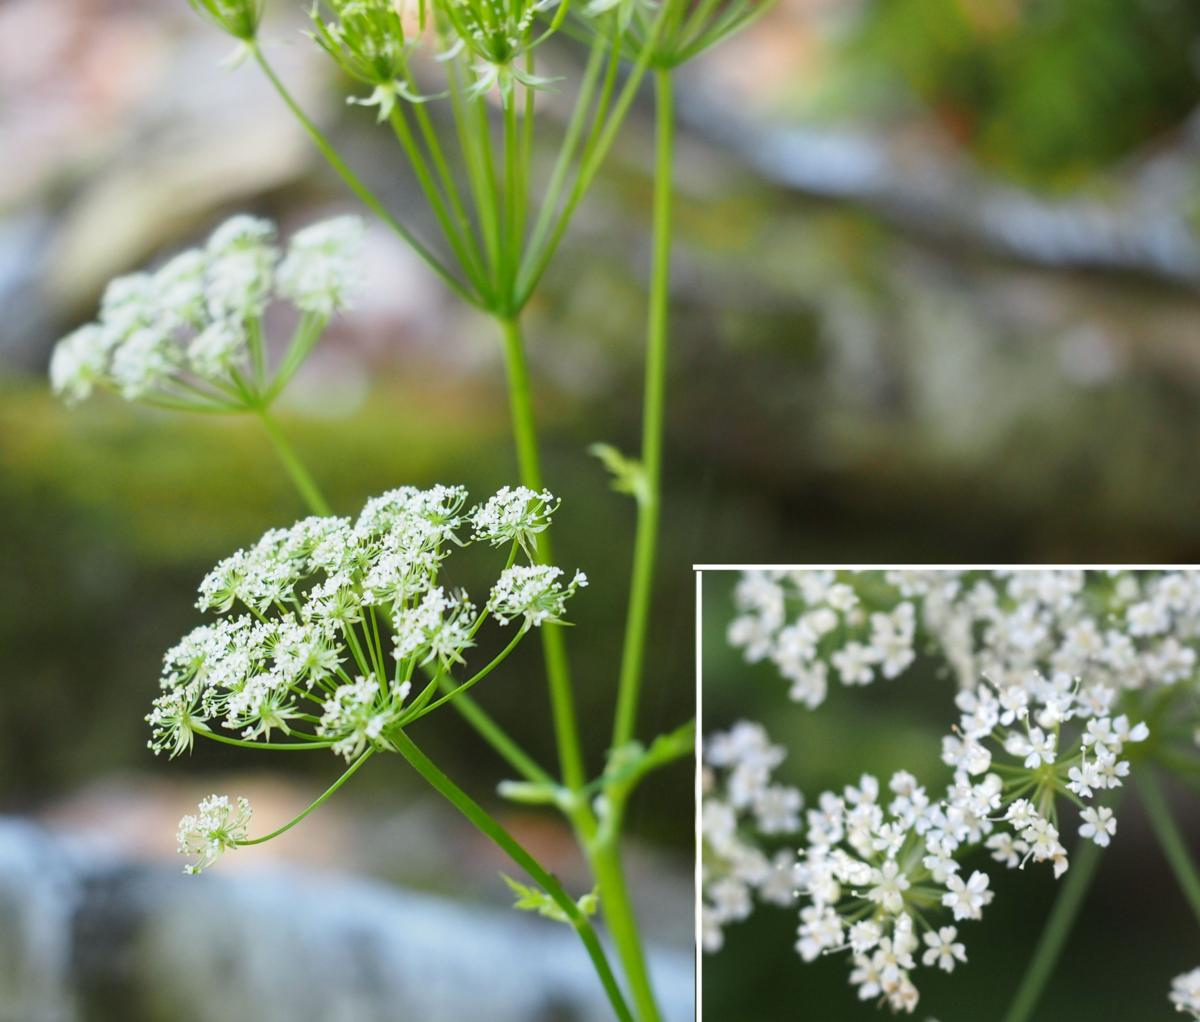 Chervil, [Upright] flower